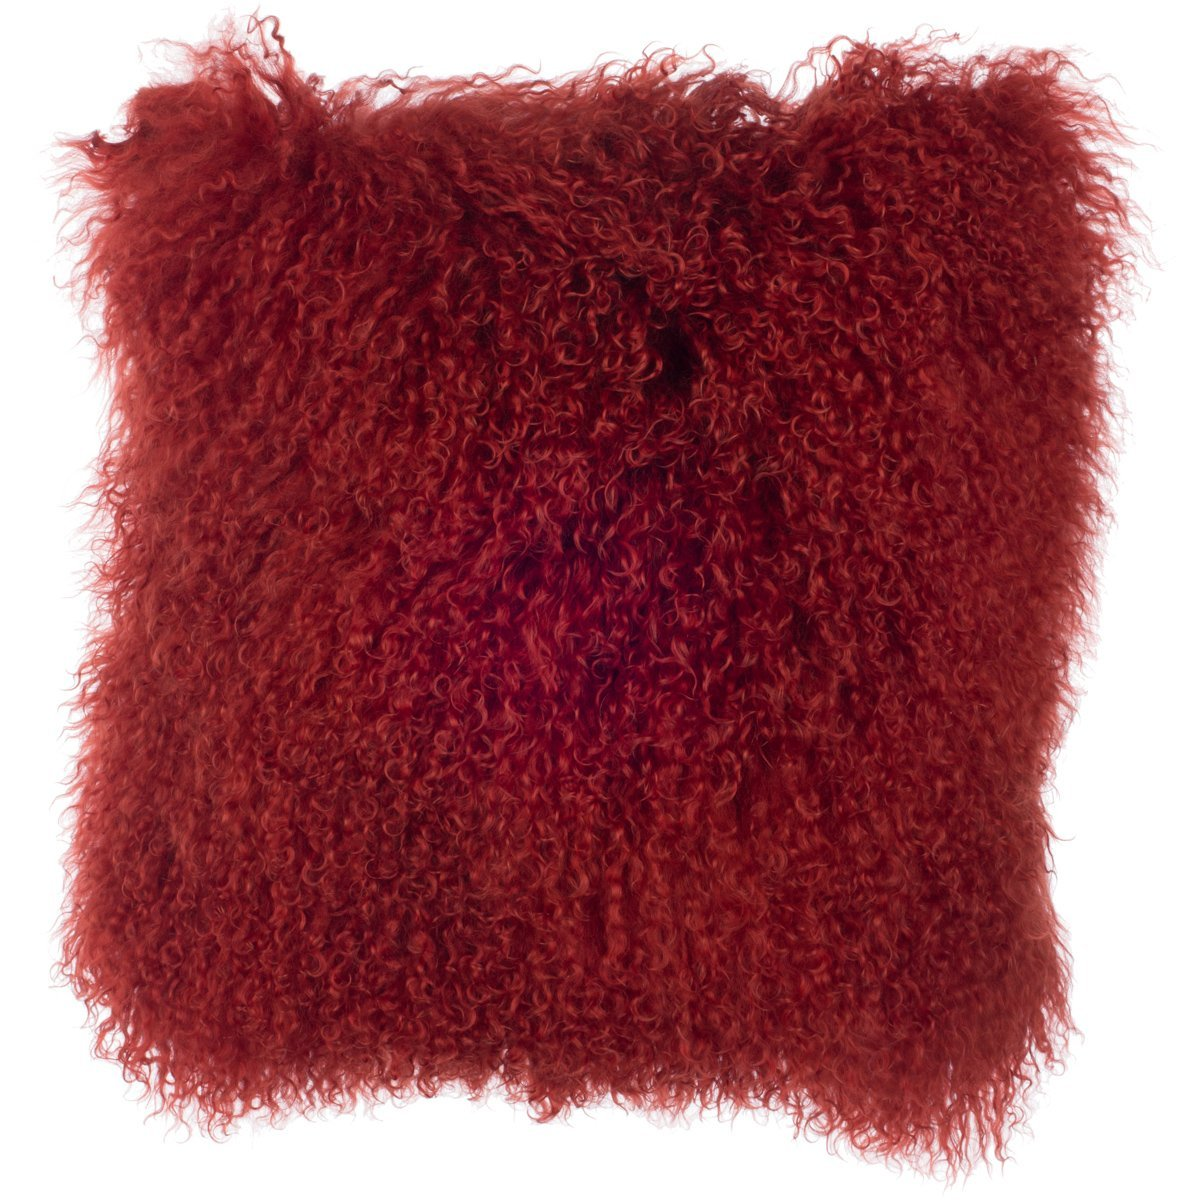 SLPR Mongolian Lamb Fur Throw Pillow Cover (16'' x 16'', Paprika) | Real Fur Decorative Cushion Cover Pillow Case for Living Room Bedroom